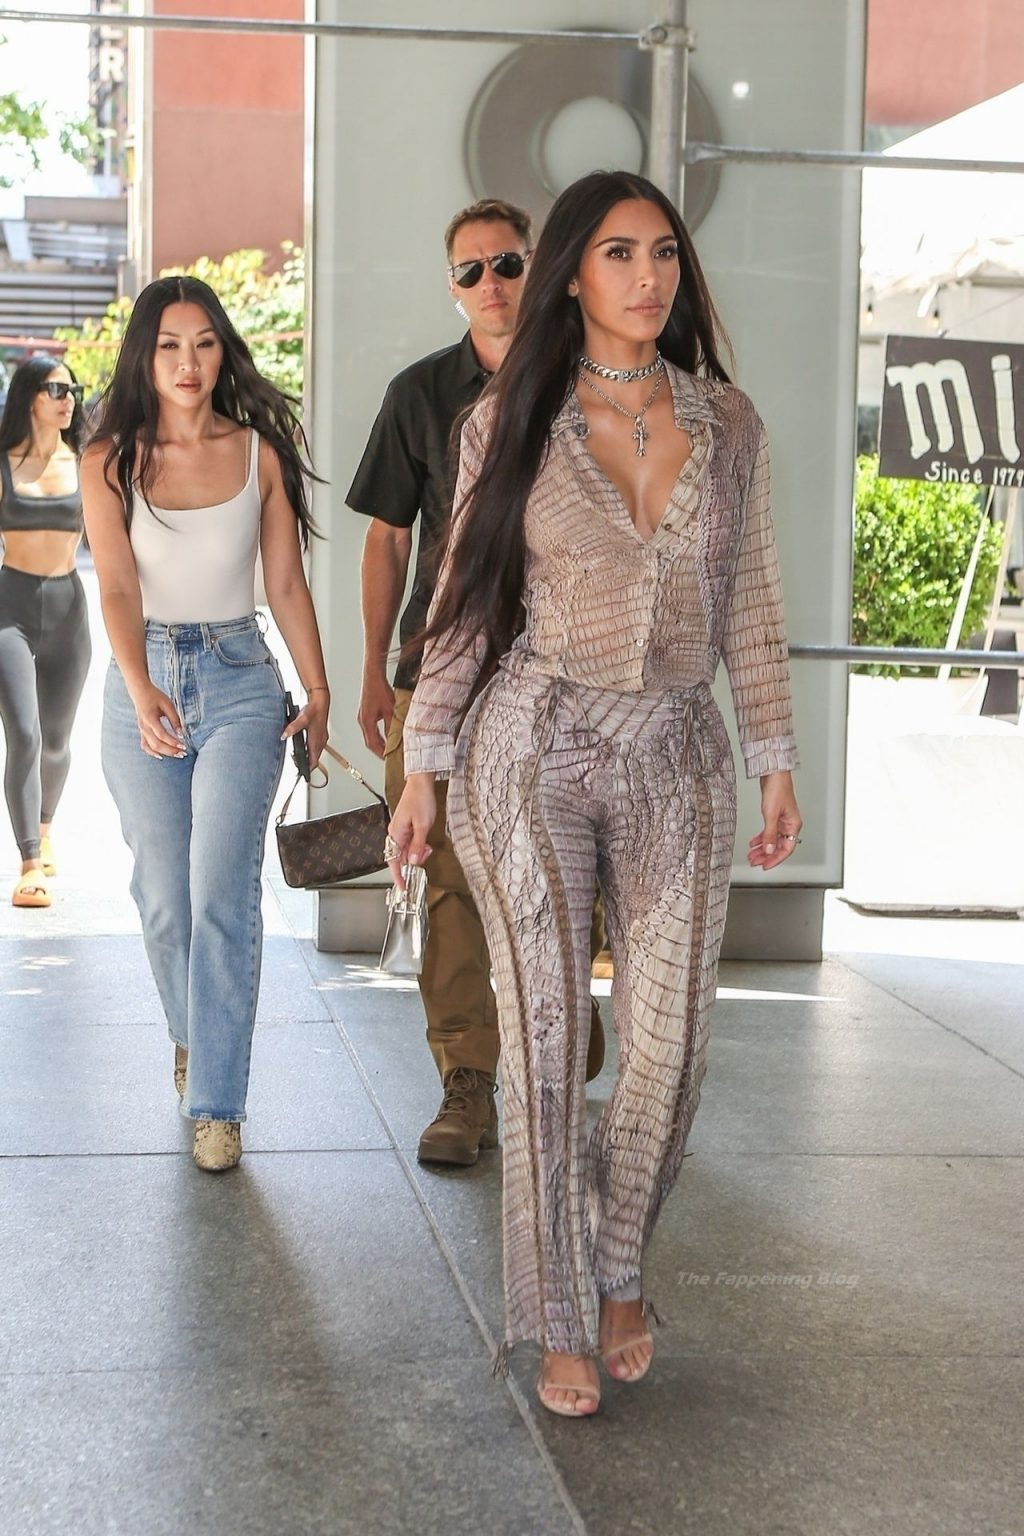 Kim Kardashian Goes Braless in Head to Toe Snakeskin as She is Spotted on Surprise Trip to NYC (22 Photos)